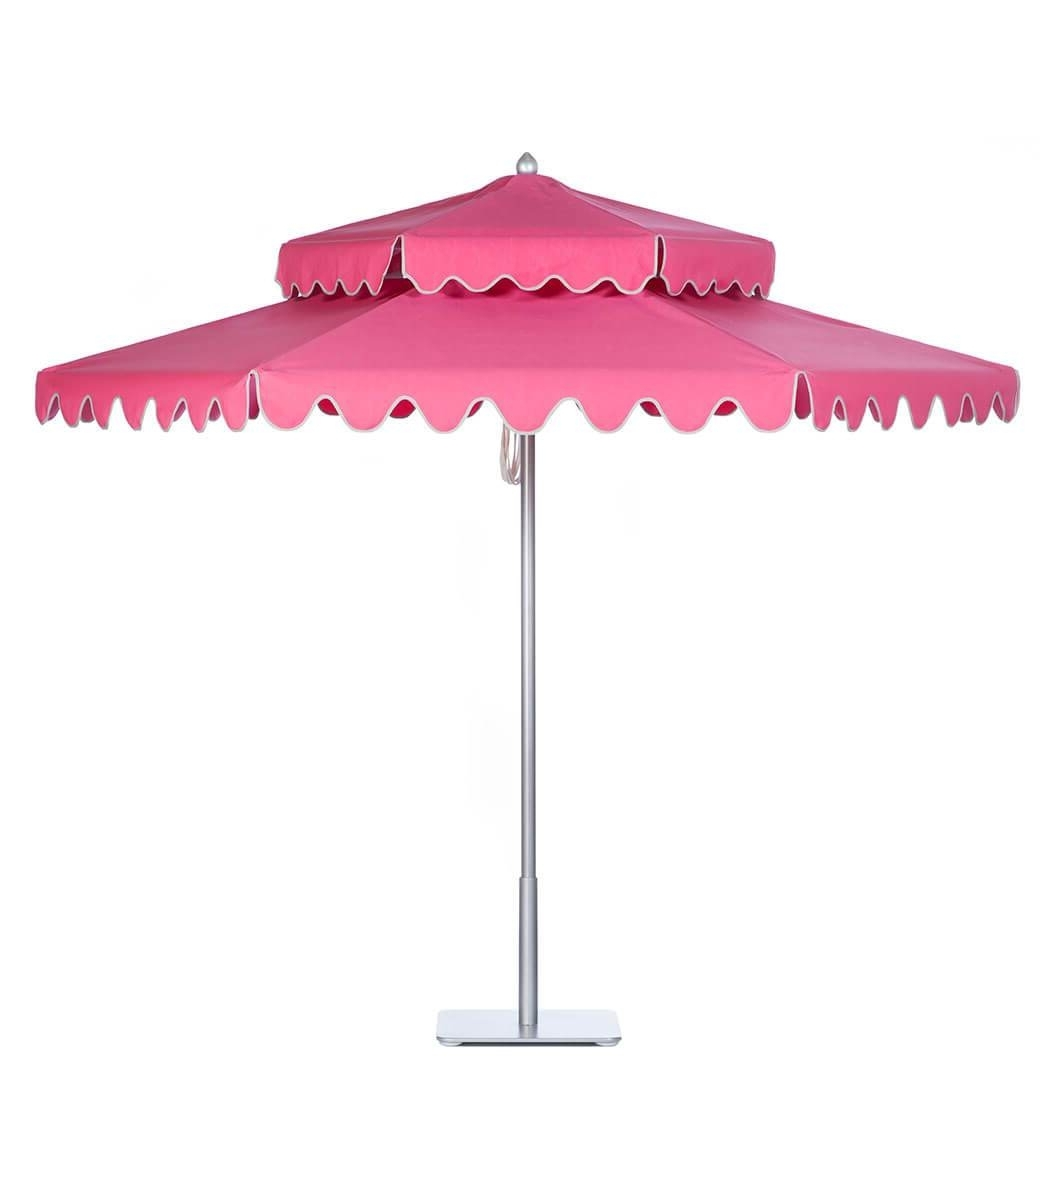 Home – Santa Barbara Designs Pertaining To Trendy Pink Patio Umbrellas (View 5 of 20)